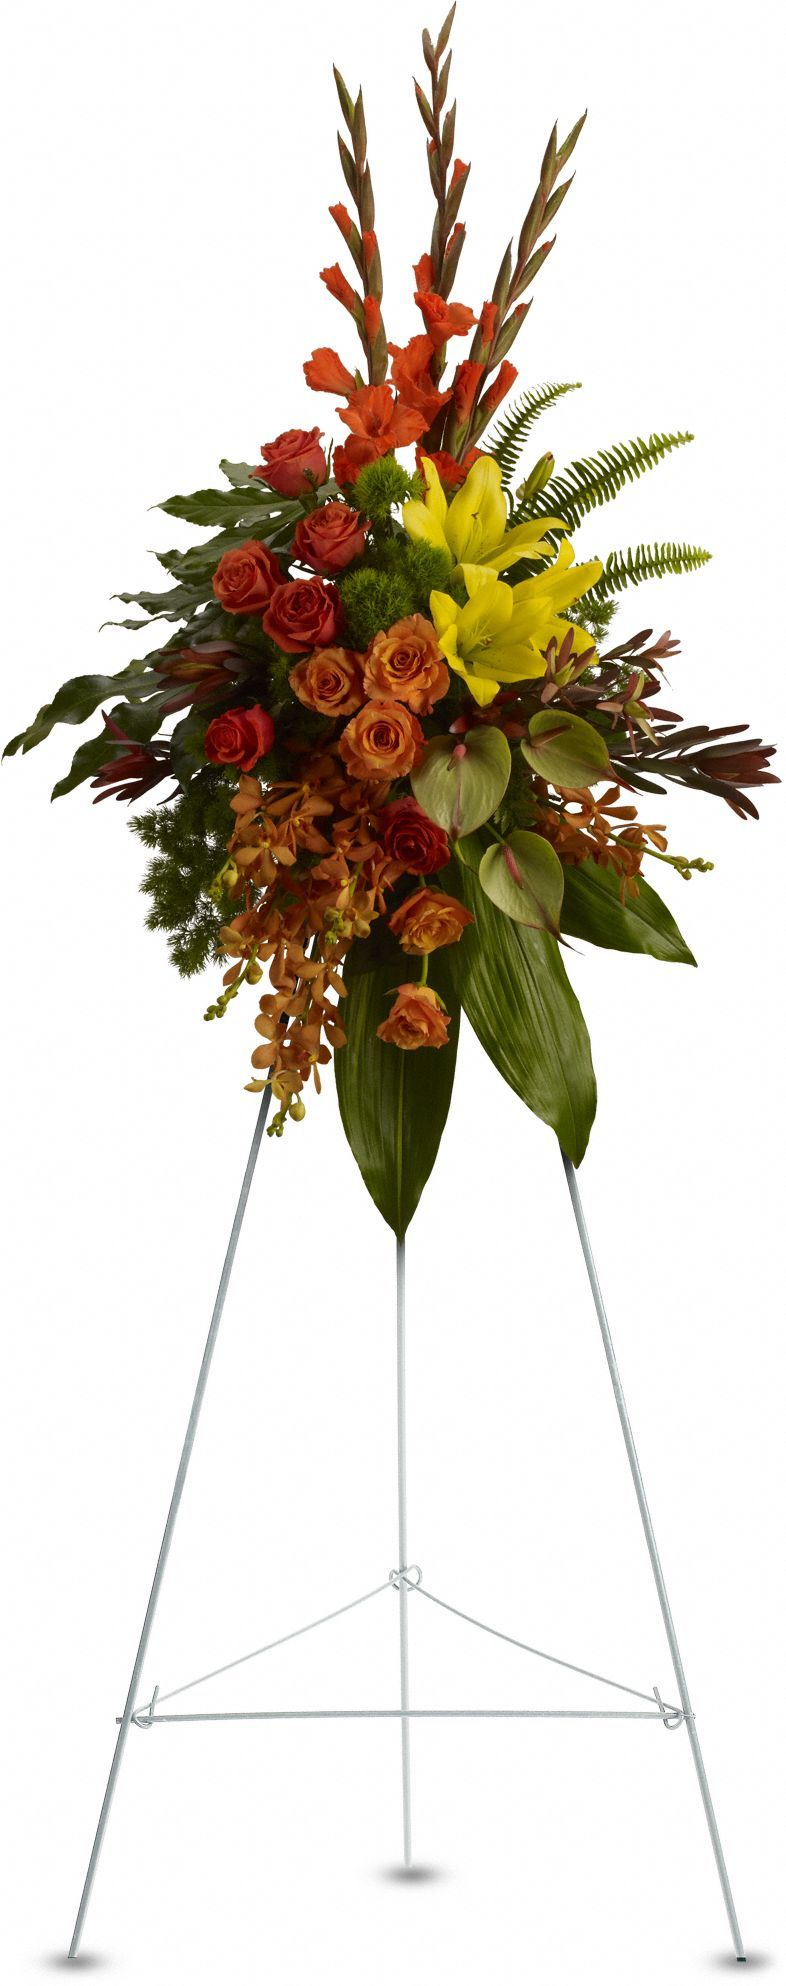 Tropical tribute spray cemetery flowers pinterest sprays inexpensive tropical funeral flower standing spray from send flowers send funeral standing sprays with exotic and unique flowers in a cheap standing spray izmirmasajfo